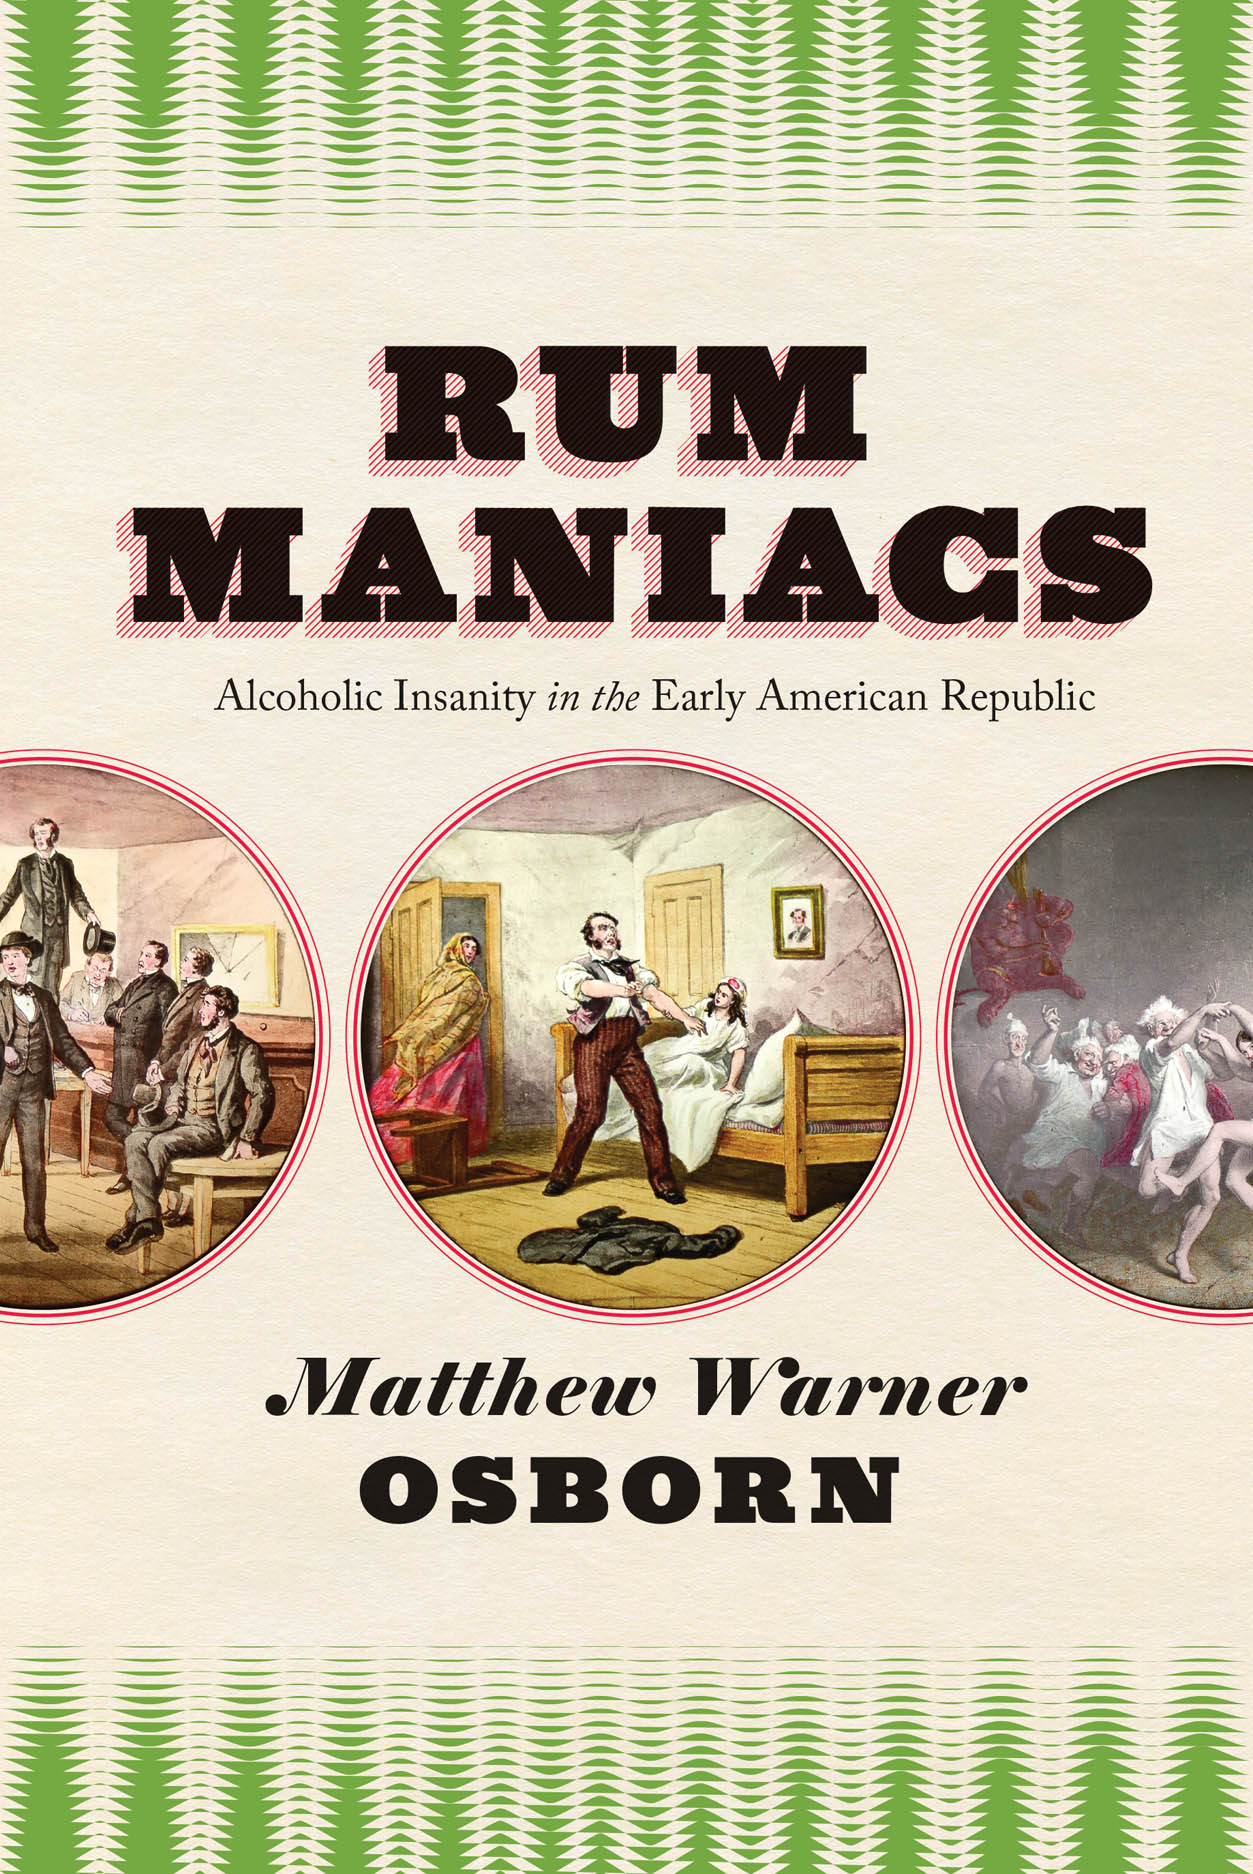 Rum Maniacs: Alcoholic Insanity in the Early American Republic